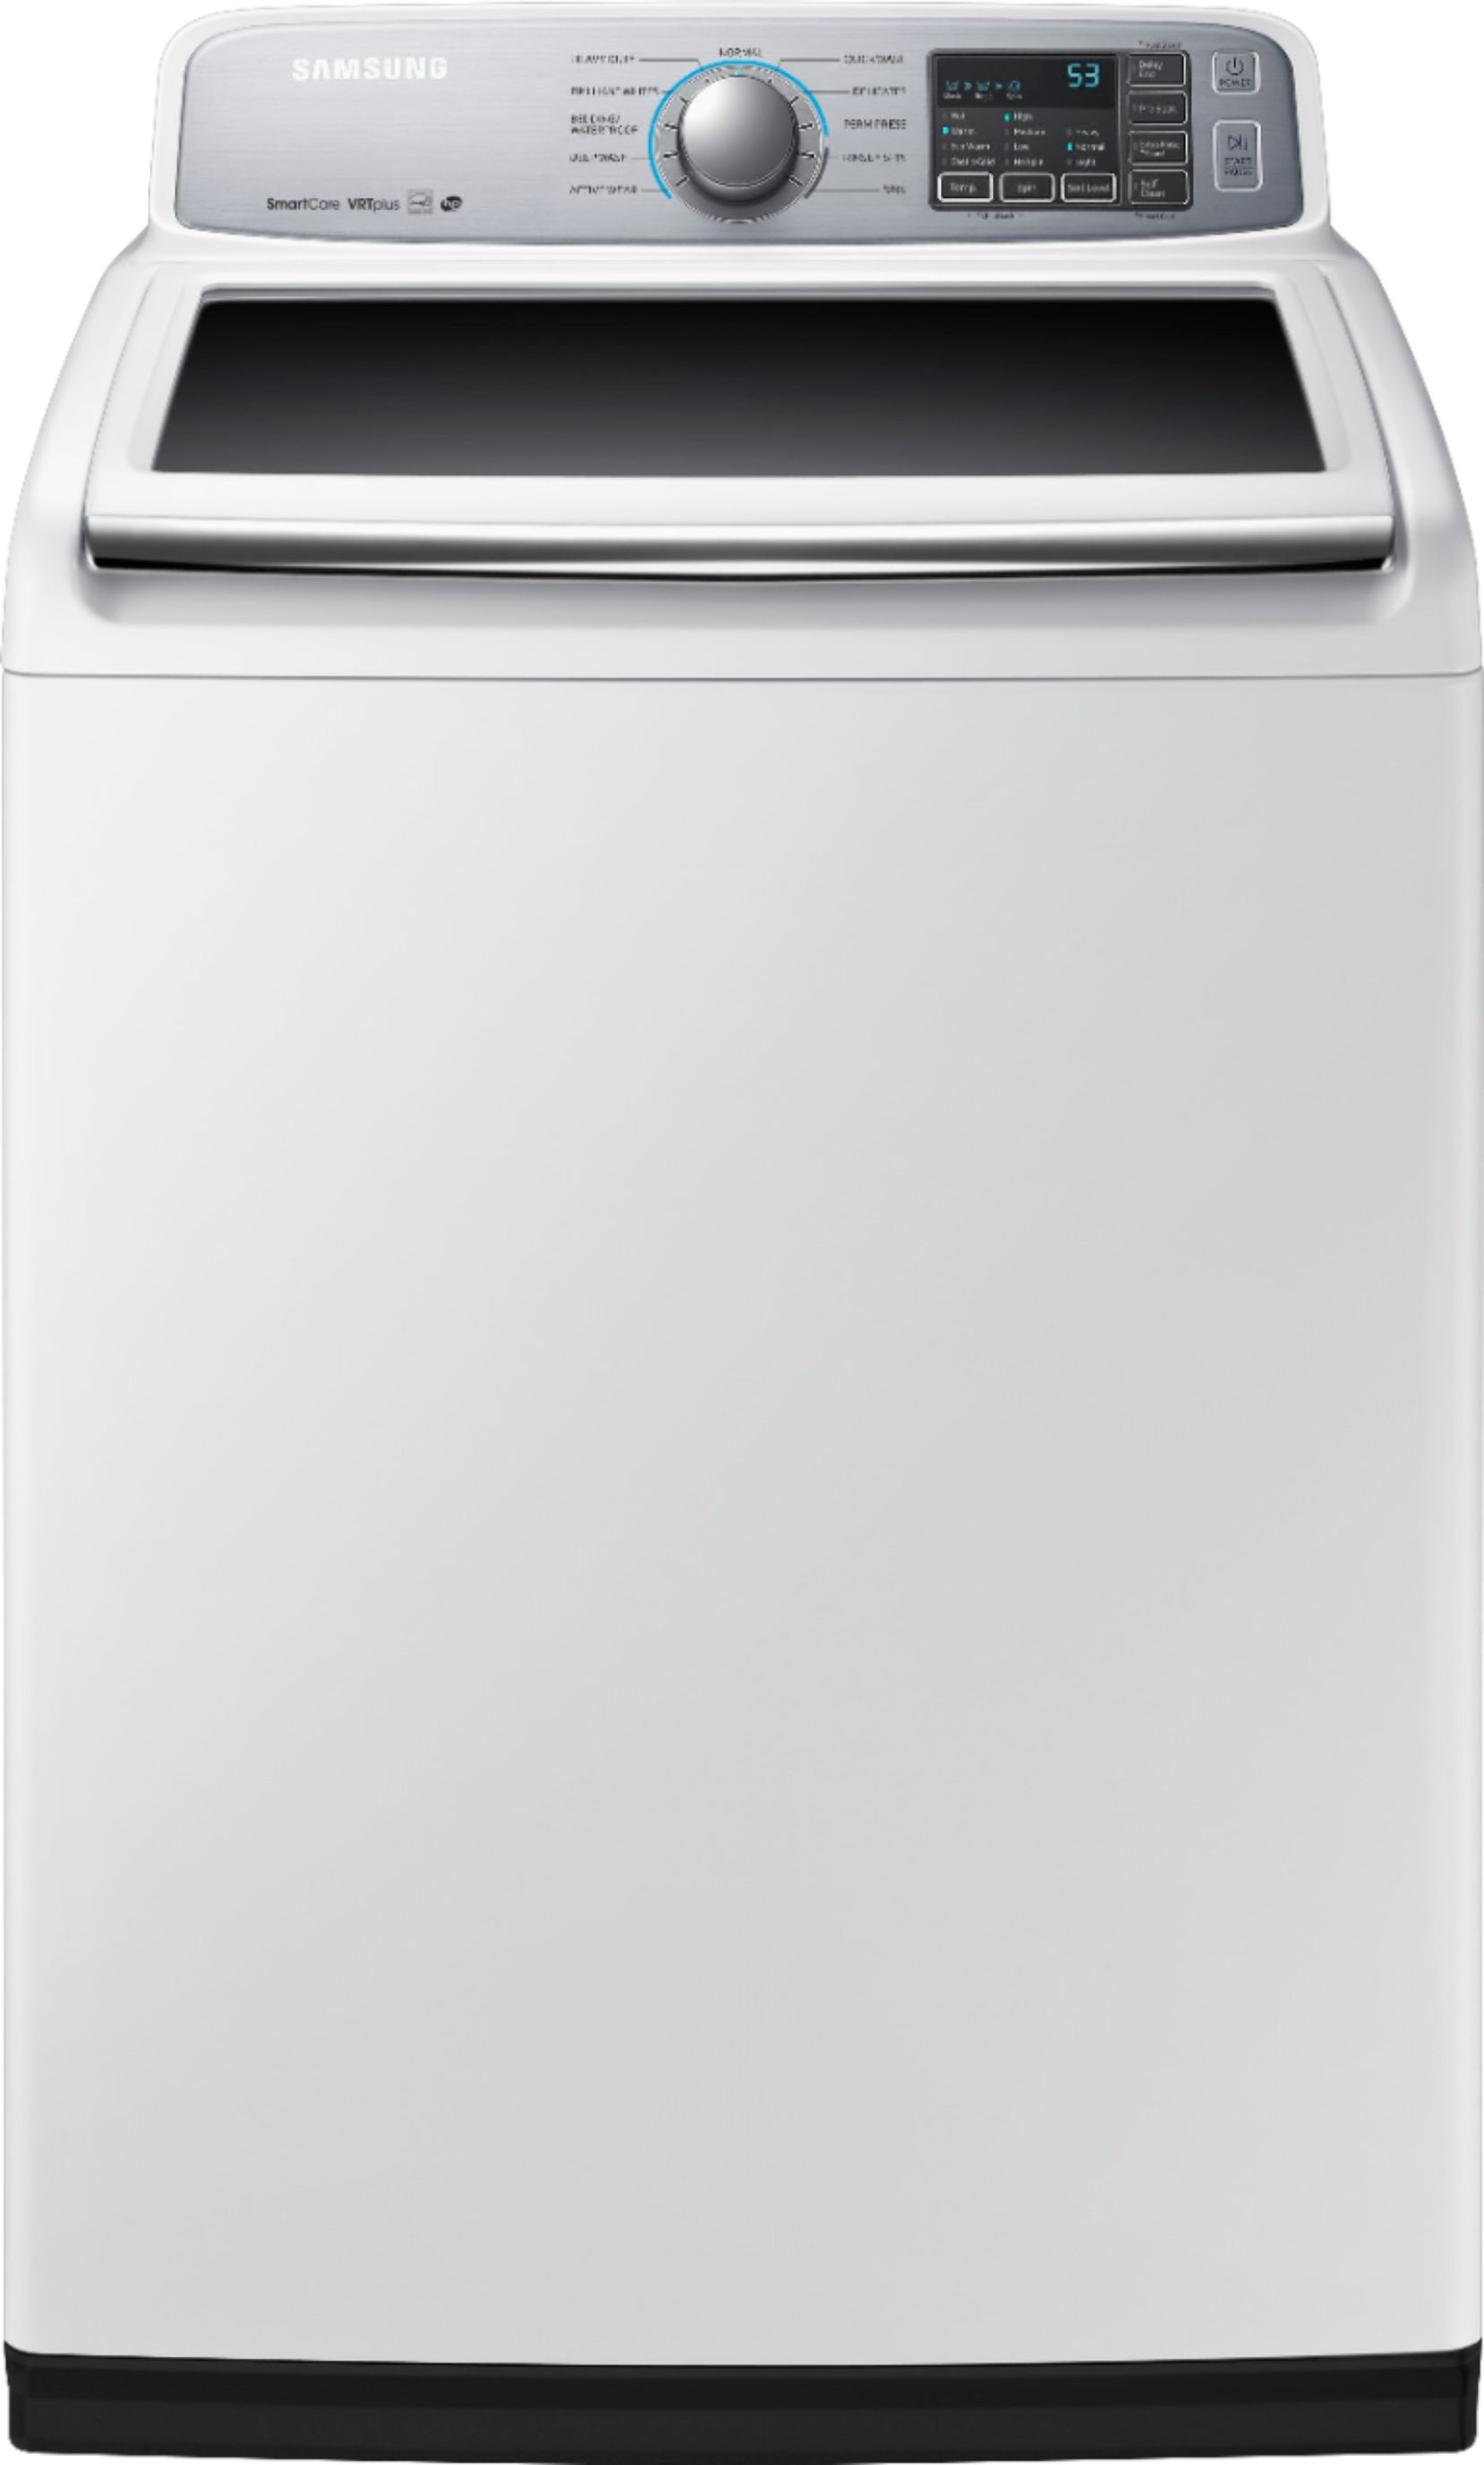 Best Buy Samsung 5 0 Cu Ft 11 Cycle High Efficiency Top Loading Washer White Wa50m7450aw